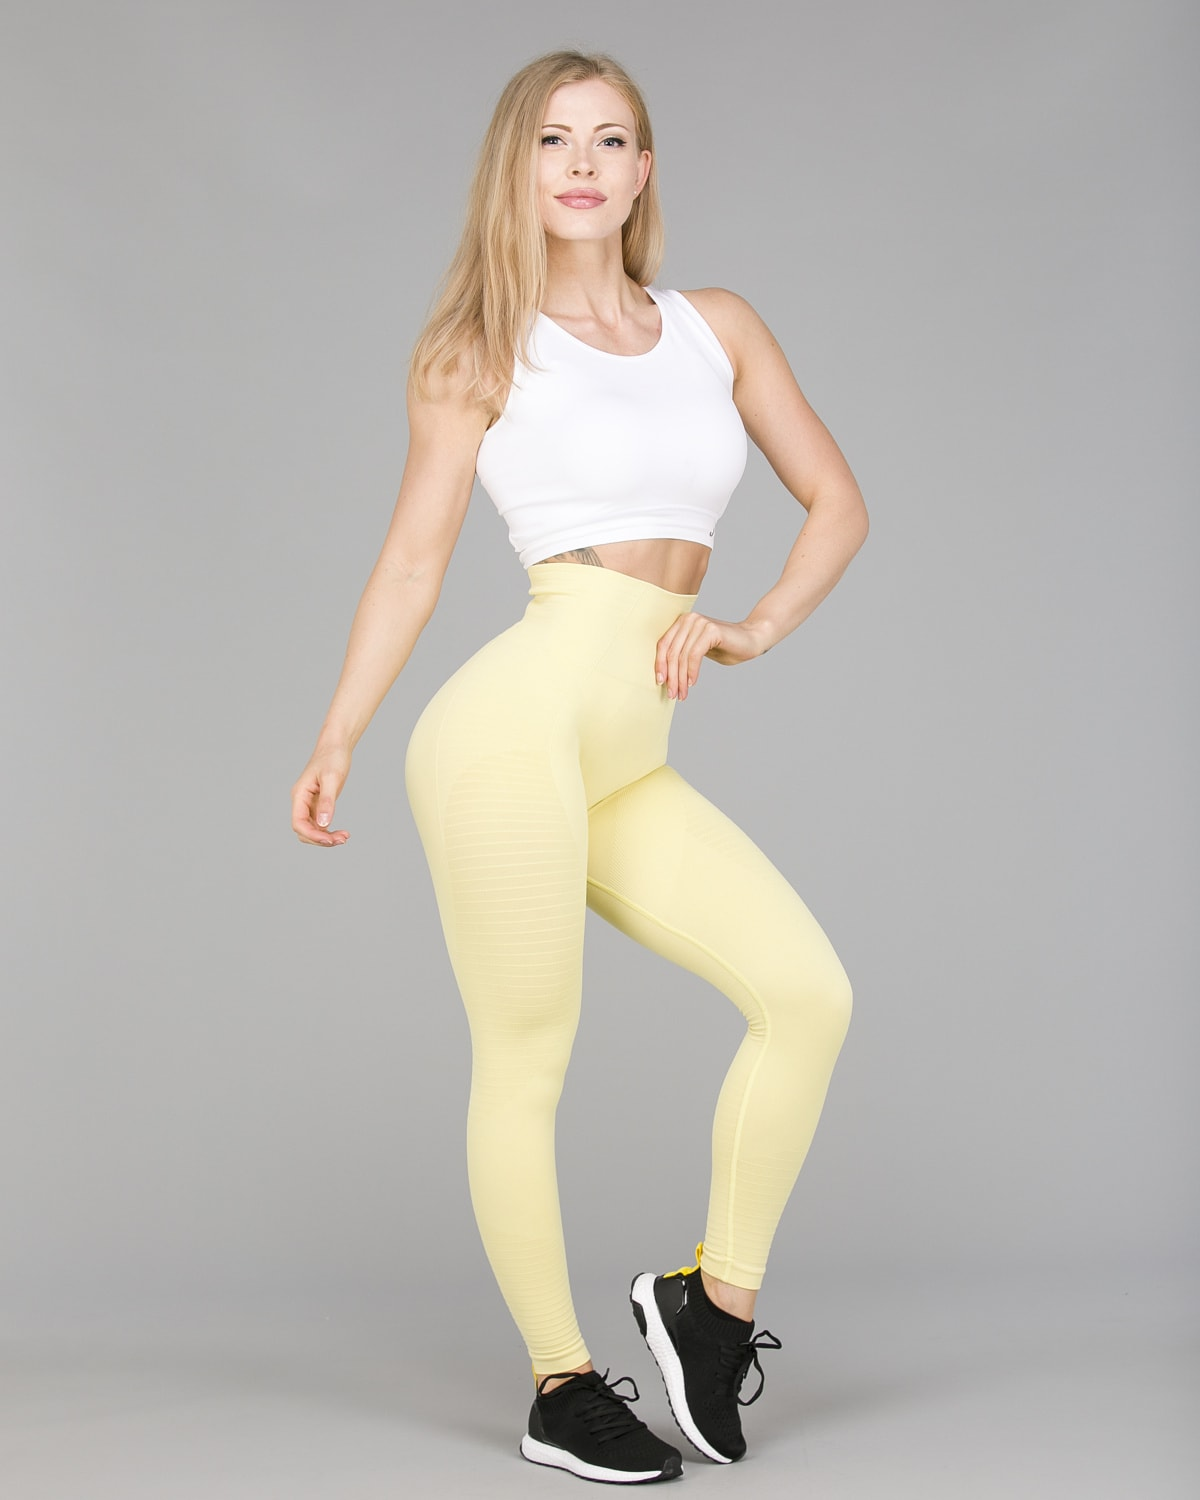 Jerf Gela 2.0 Tights Yellow Pastel1